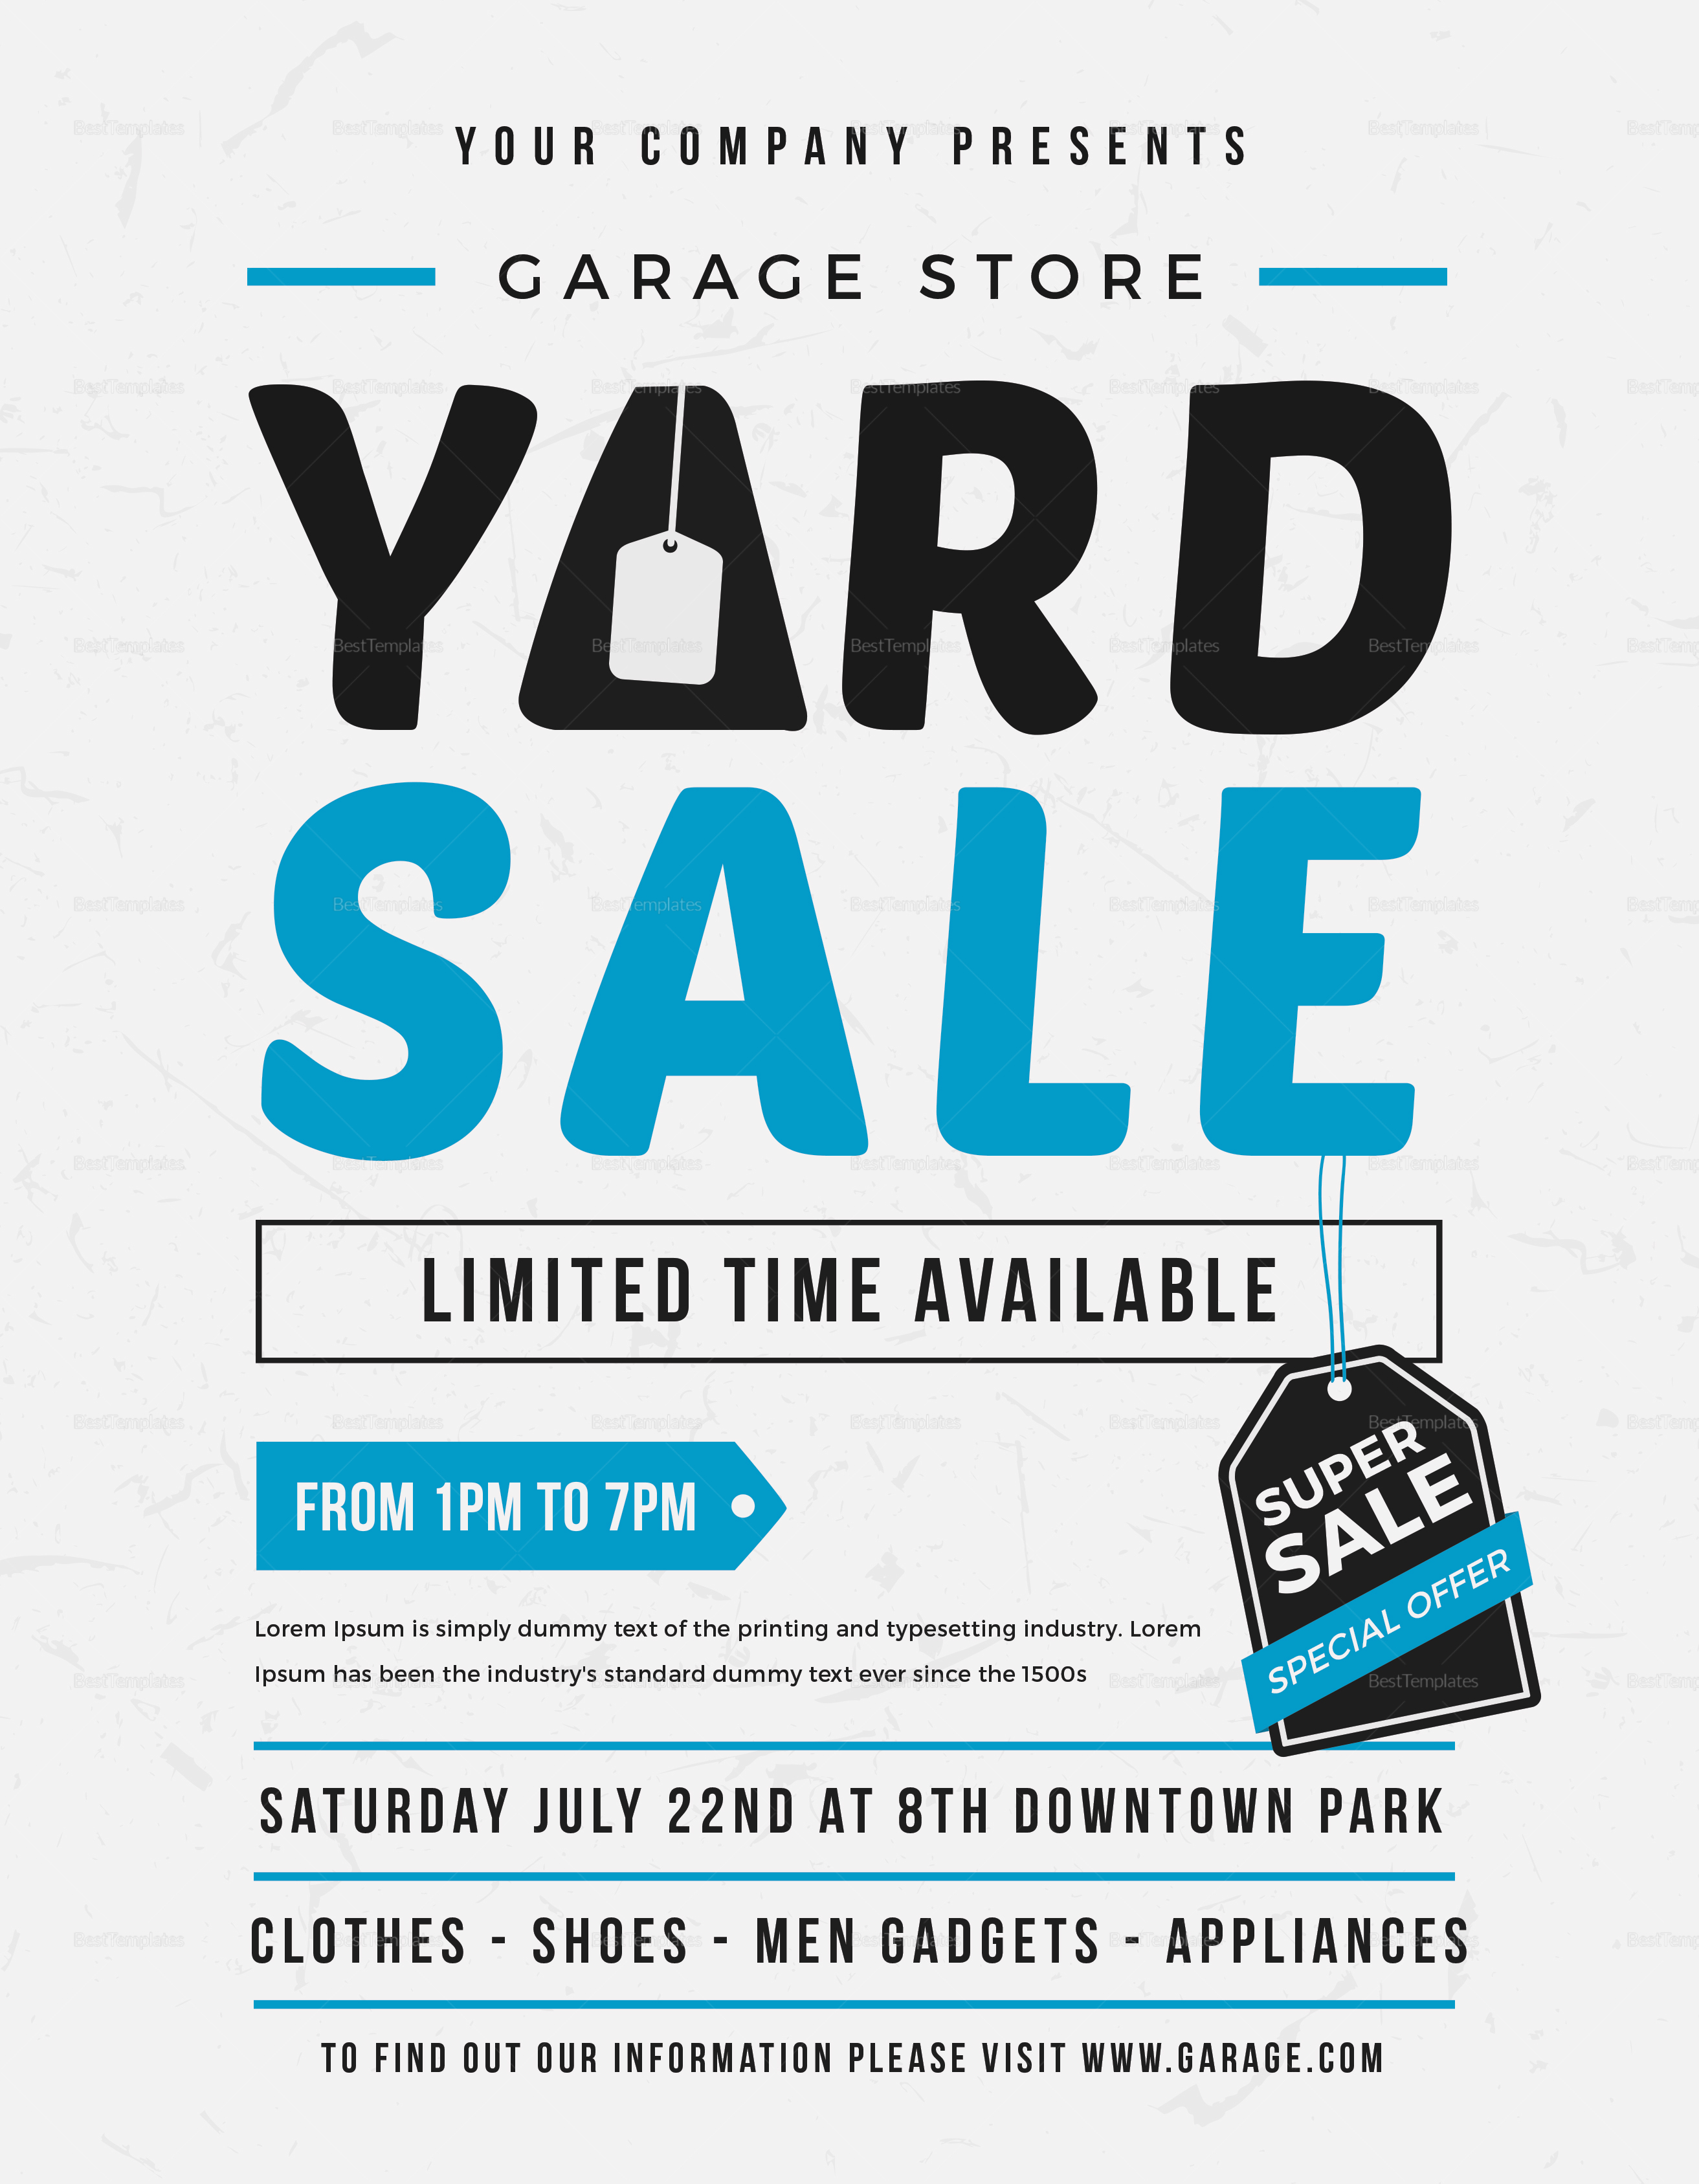 unique yard sale flyer design template in word  psd  illustrator  publisher